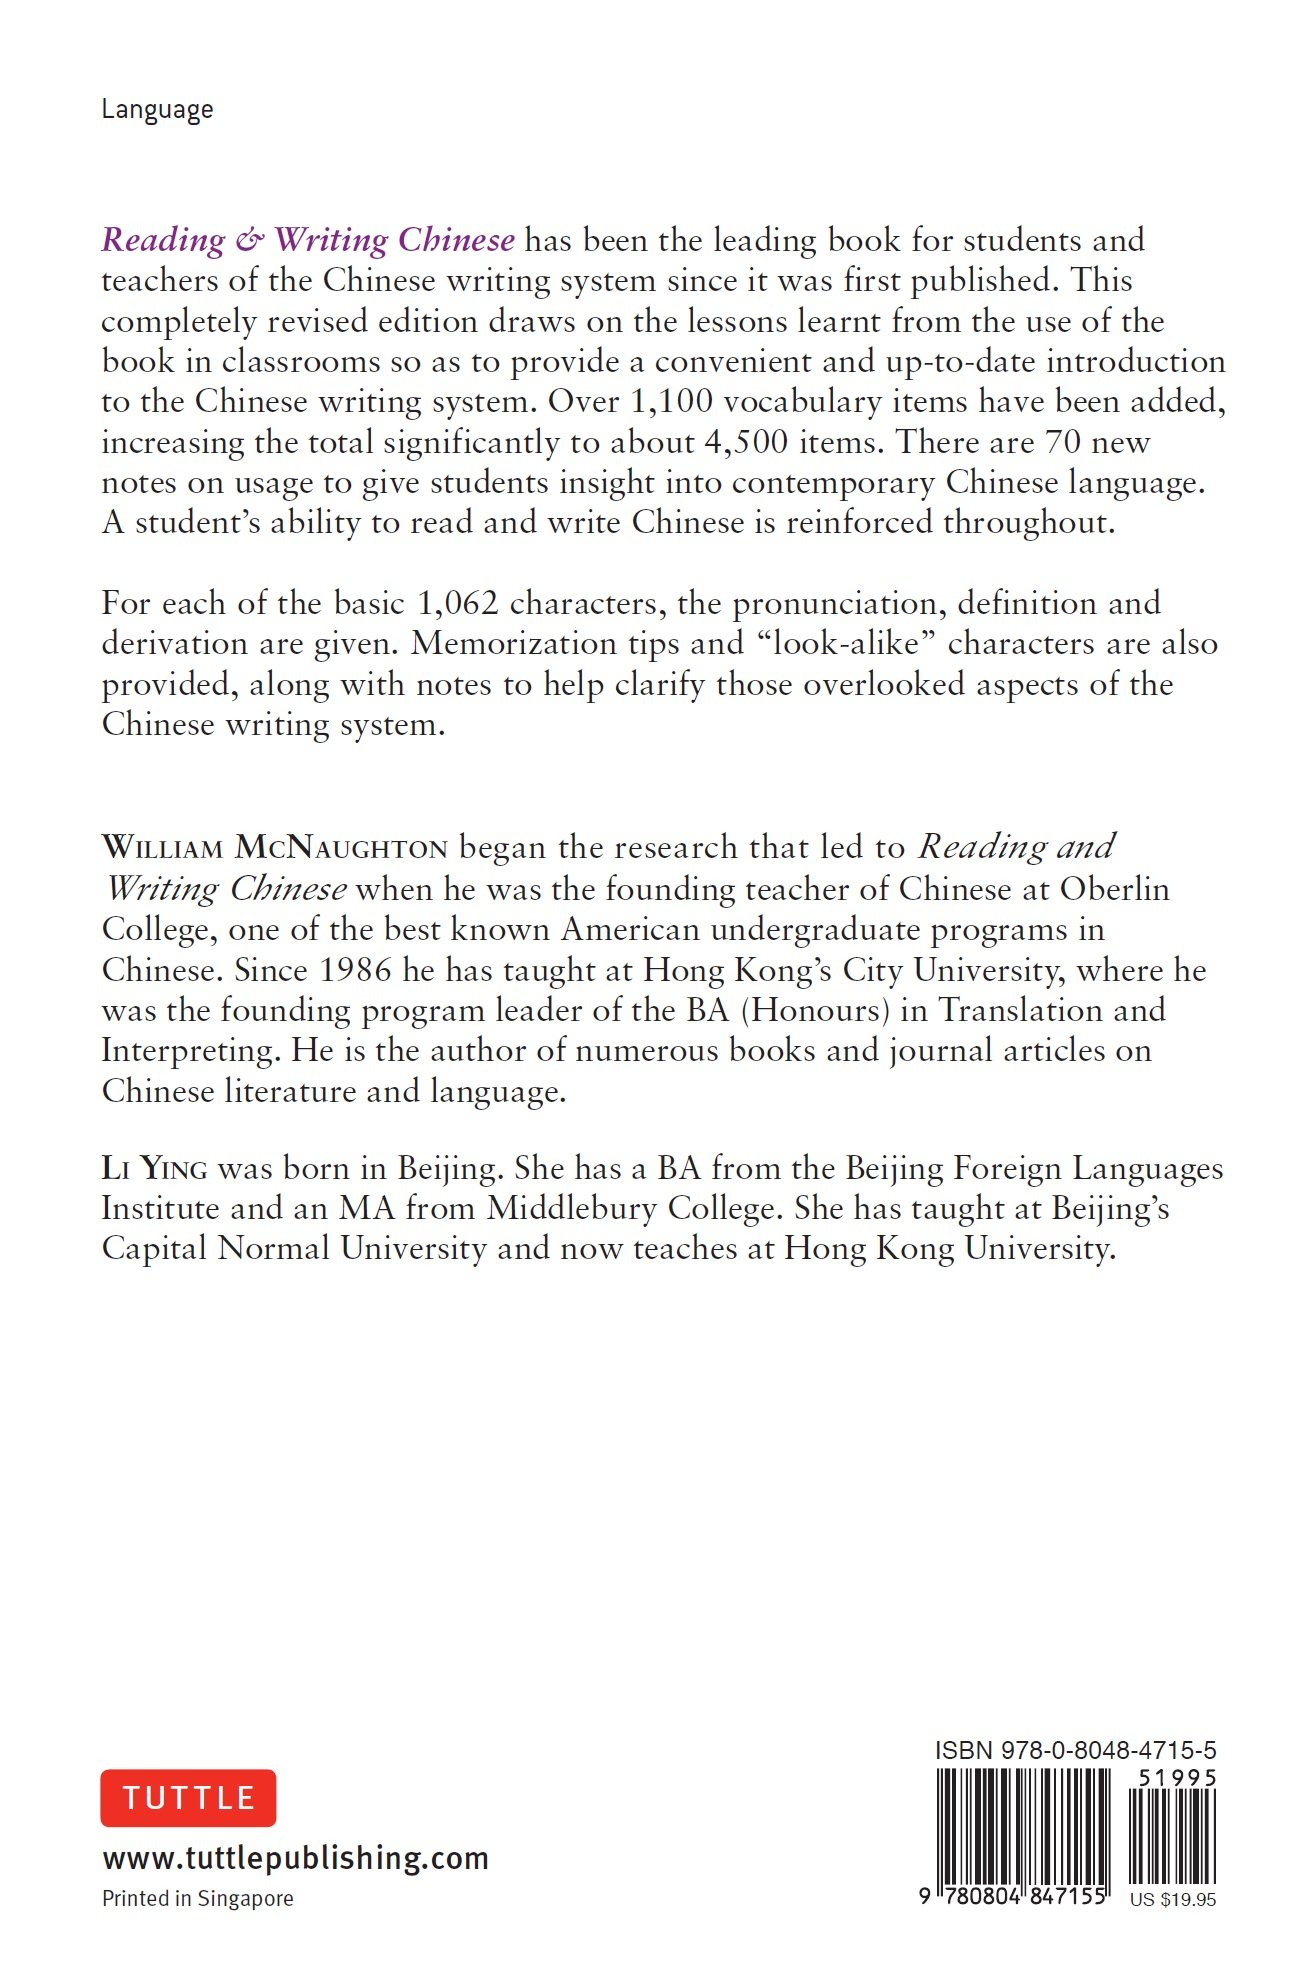 Reading & Writing Chinese Traditional Character Edition: Aprehensive  Guide To The Chinese Writing System: William Mcnaughton, Li Ying:  9780804847155: